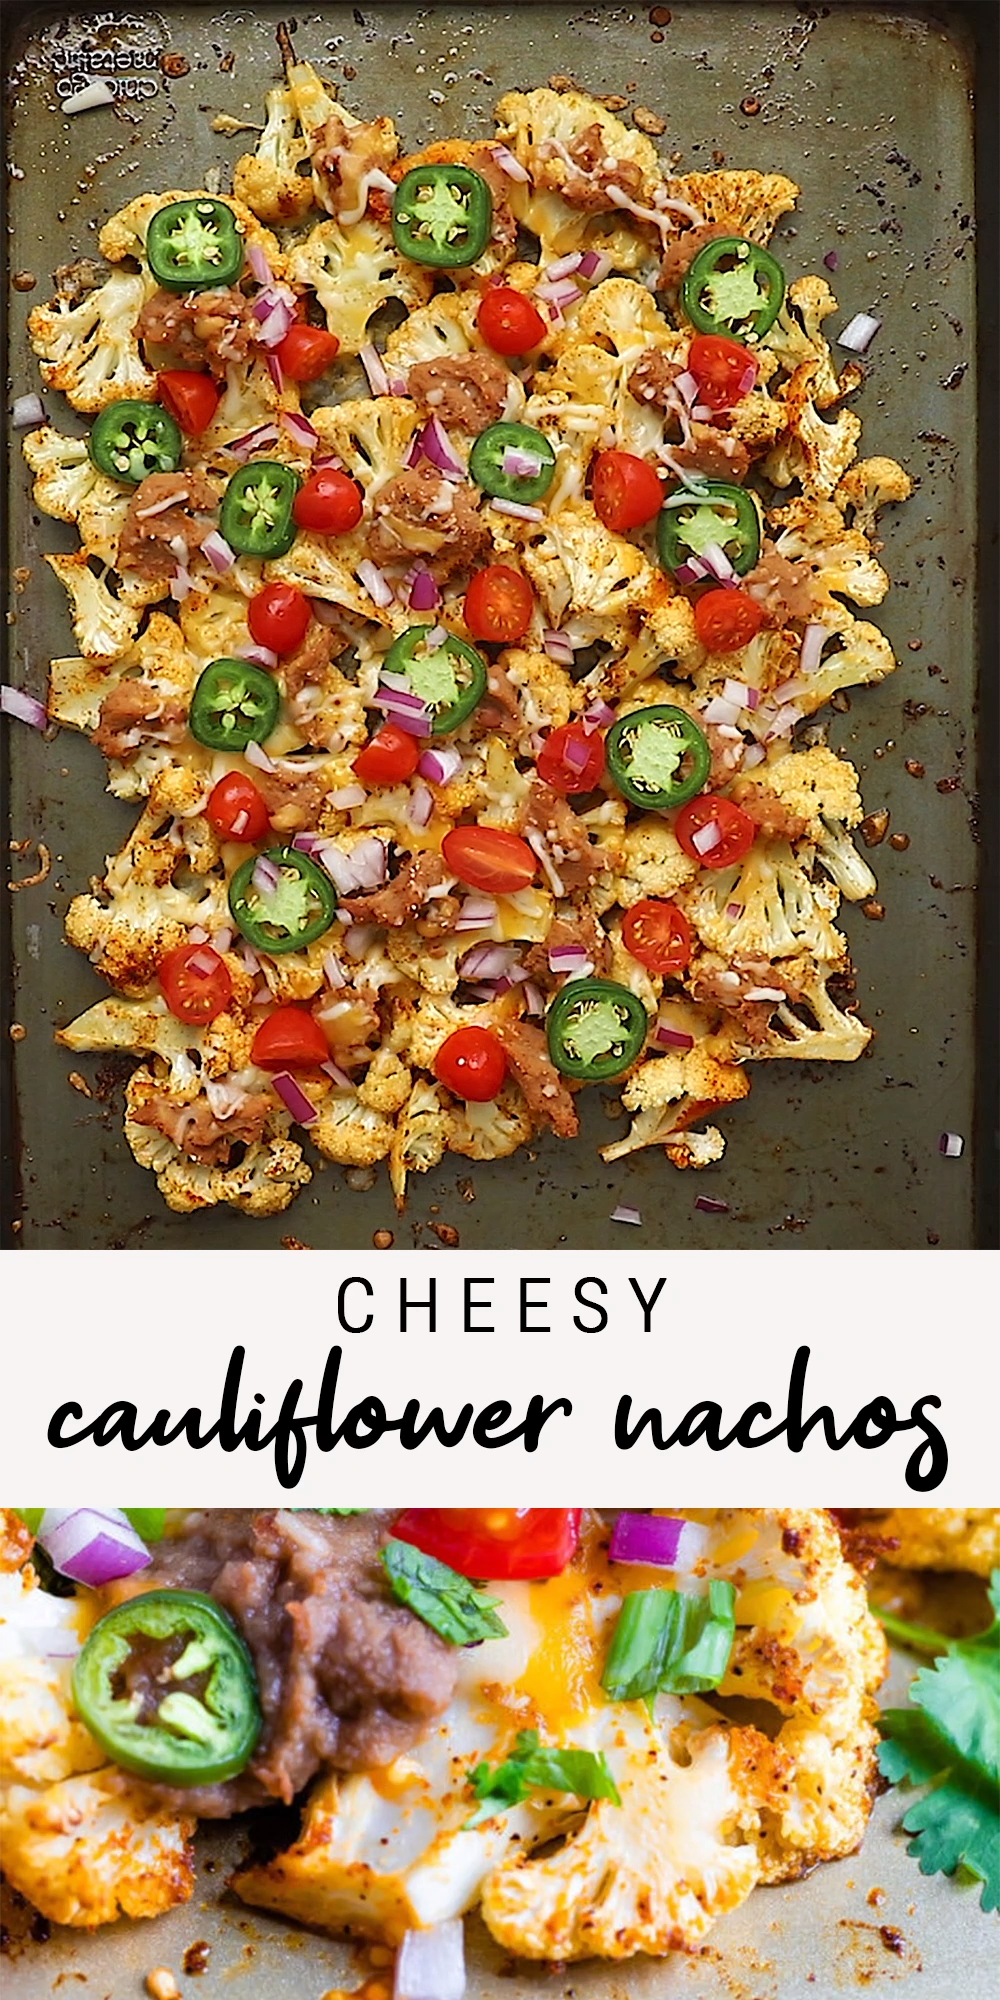 Photo of Cheesy Baked Cauliflower Nachos | Healthy Low Carb Recipe